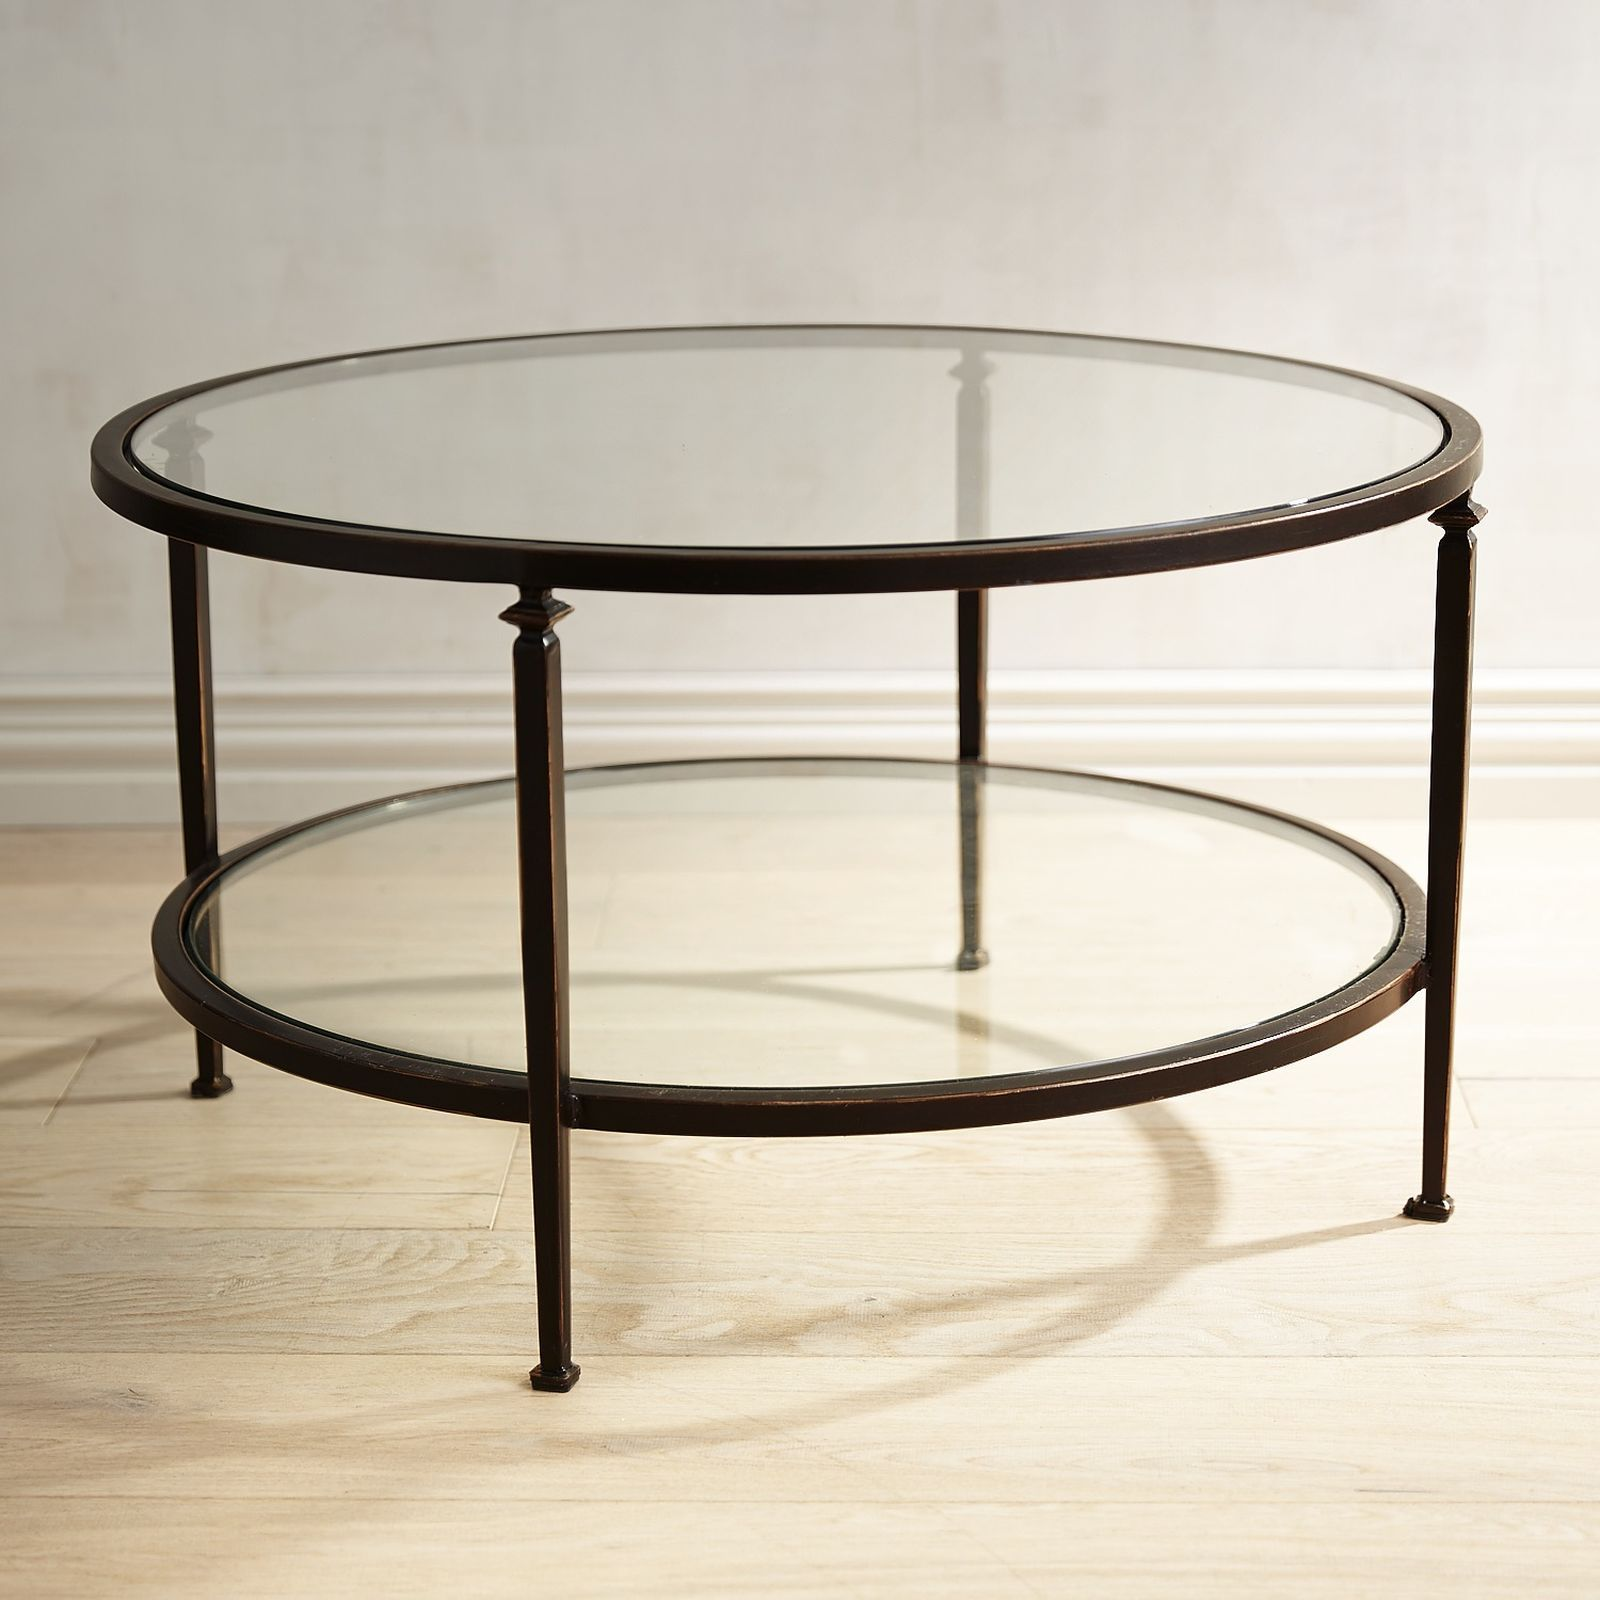 Our Lincoln Round Coffee Table Has A Slender Bronze